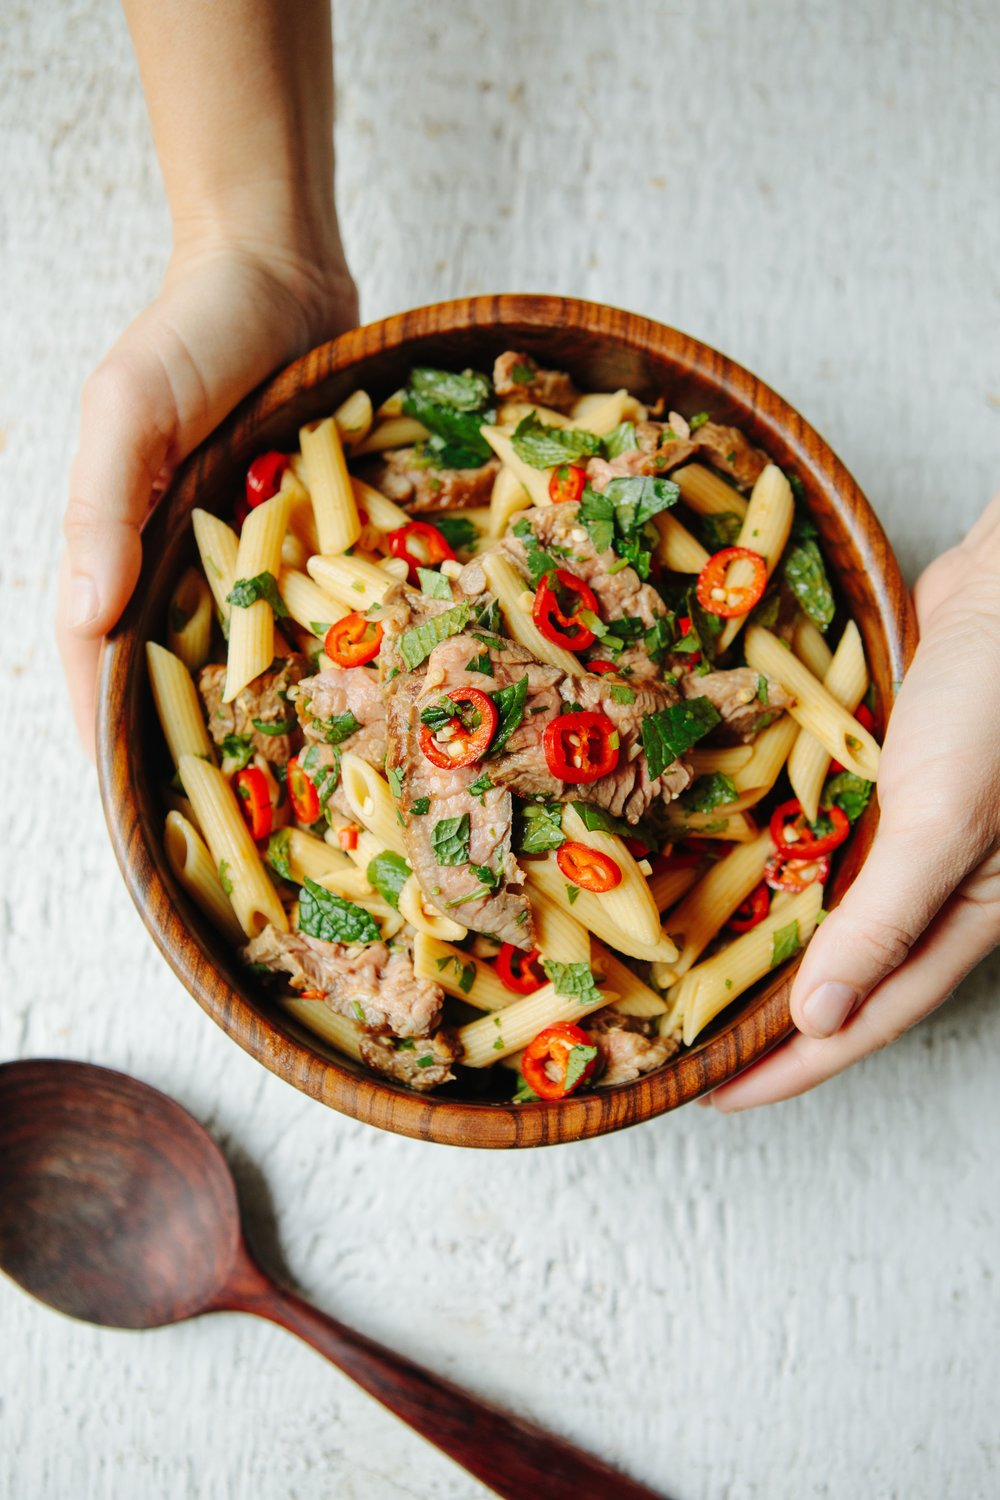 THE ART OF THE MASHUP_Isaan Steak Pasta Salad_BRIAN SAMUELS PHOTOGRAPHY-6678.jpg